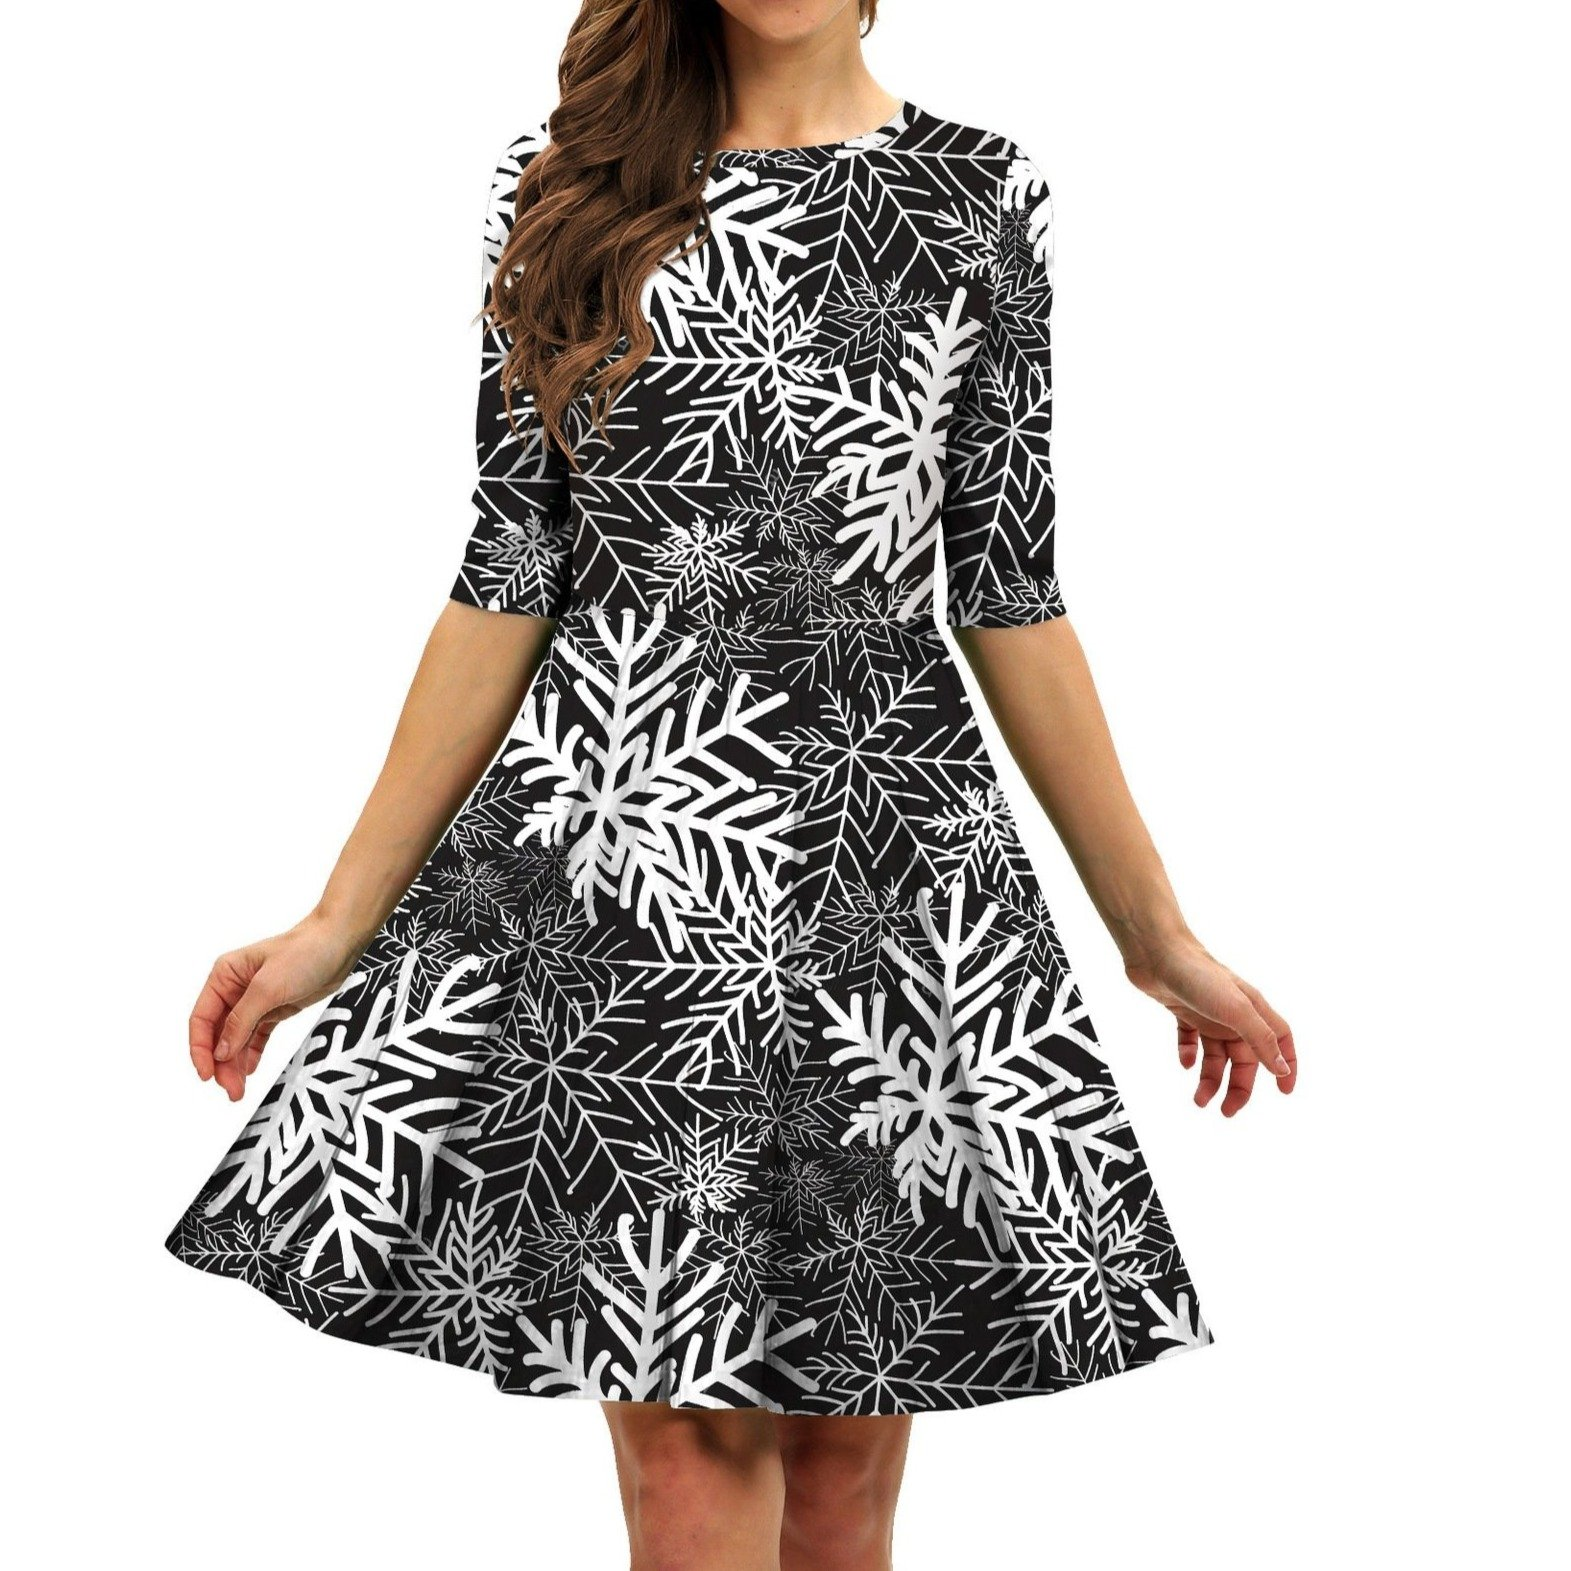 Women's swing vintage print Chritstmas party dress A-line fashion new year party dress